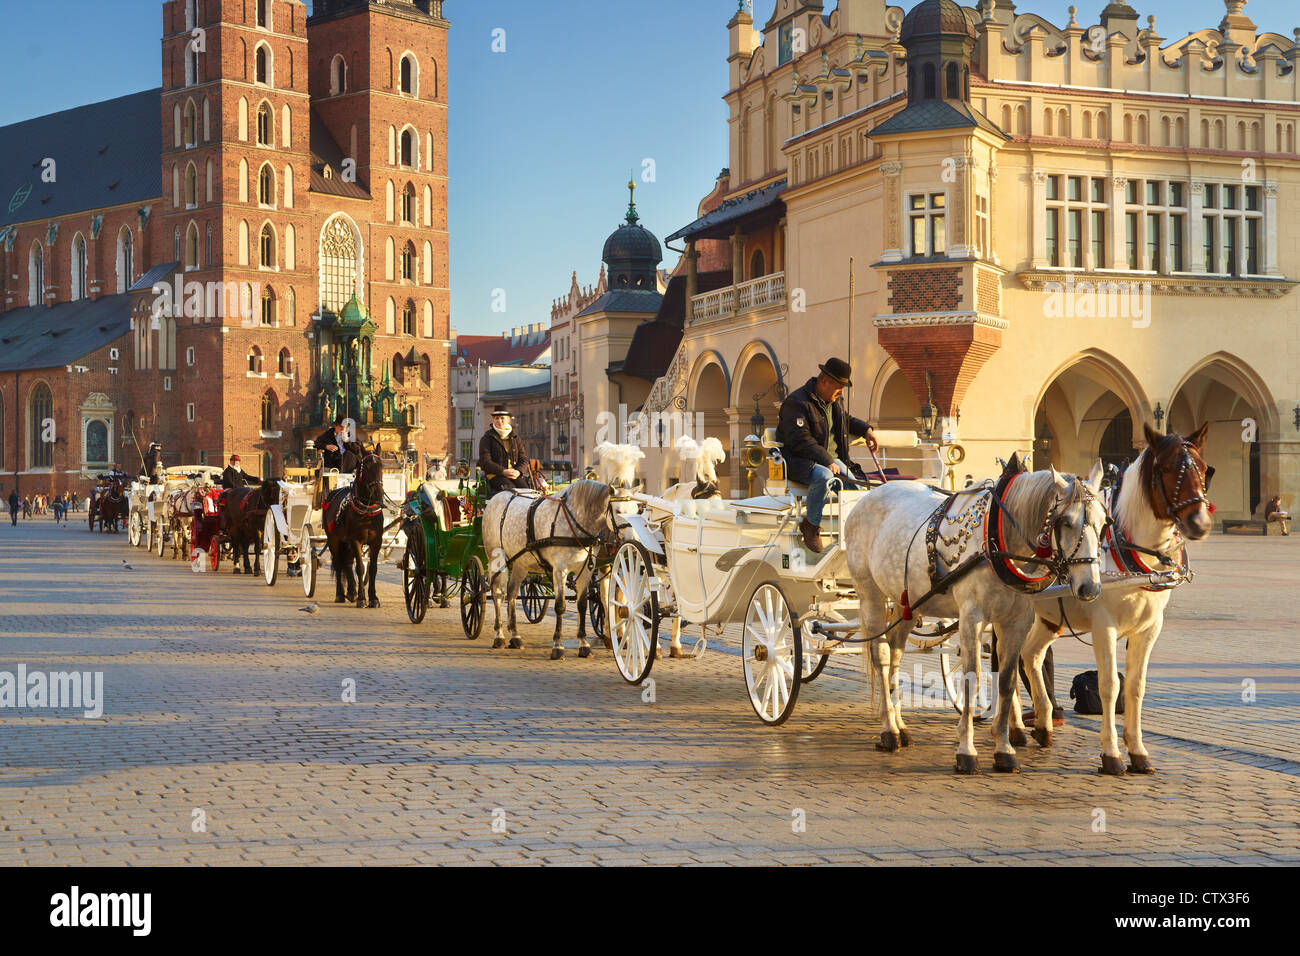 Carriage waiting for tourists, Cracow, Poland, UNESCO - Stock Image